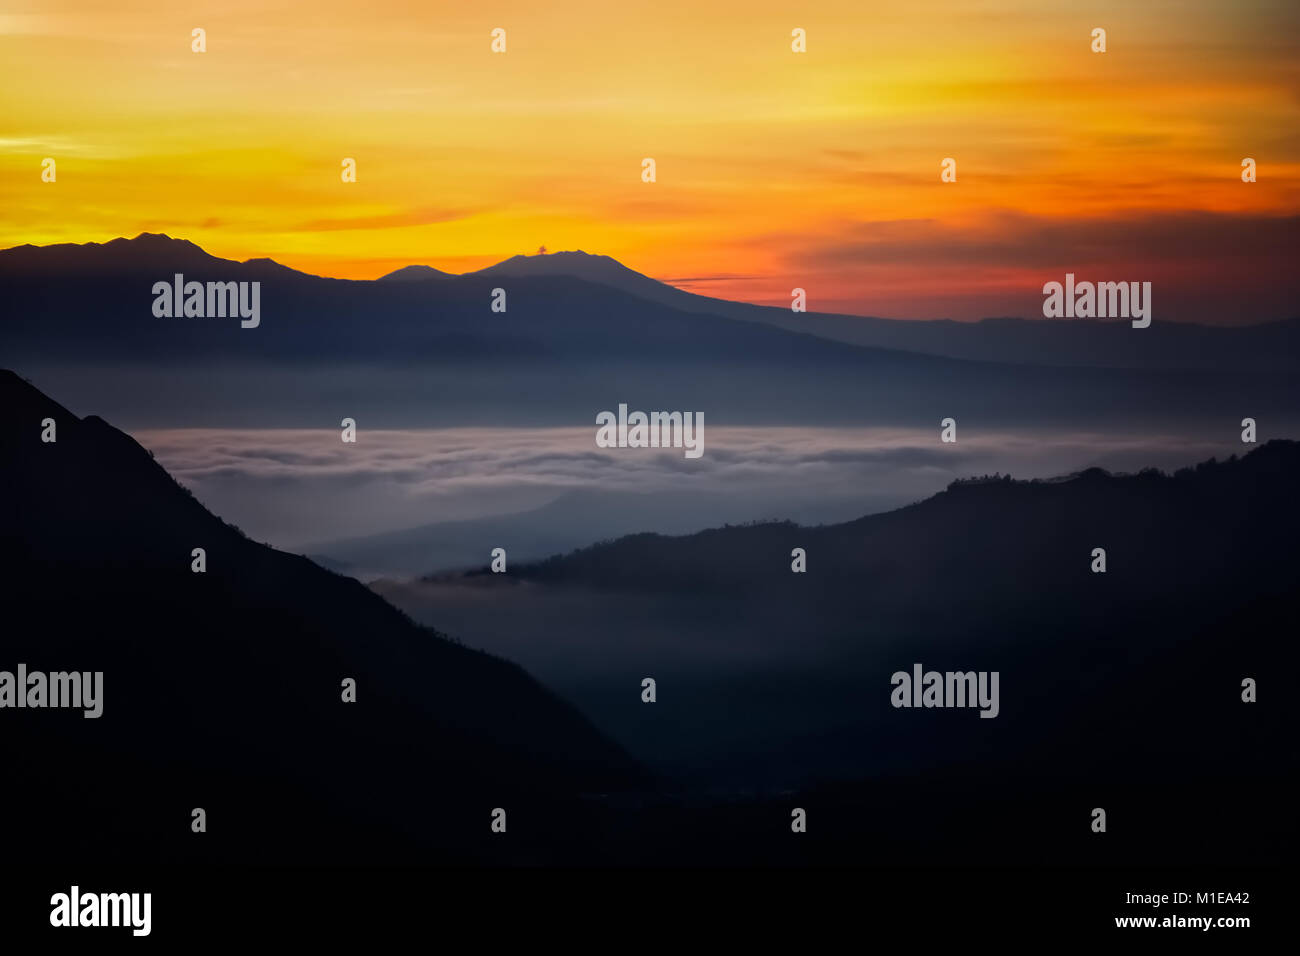 Early morning after sunrise view of the spectacular Gunung Bromo and Sumeru volcanoes in Java, Indonesia - Stock Image